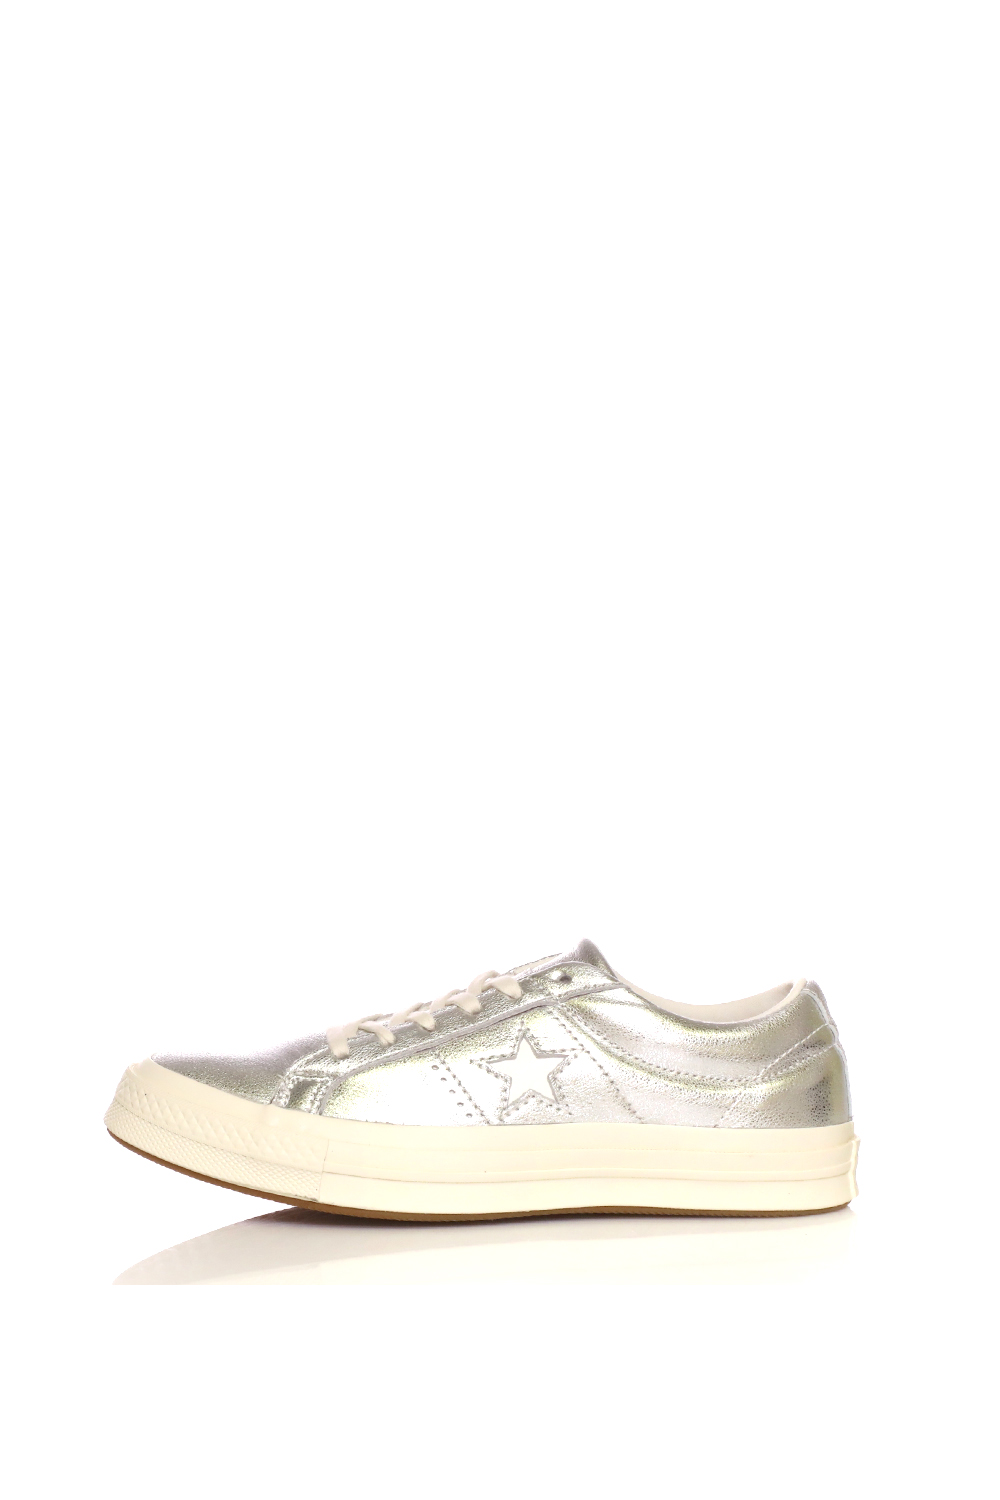 CONVERSE - Γυναικεία παπούτσια ONE STAR λευκά - Roe Shoes Collection bcc70038f72